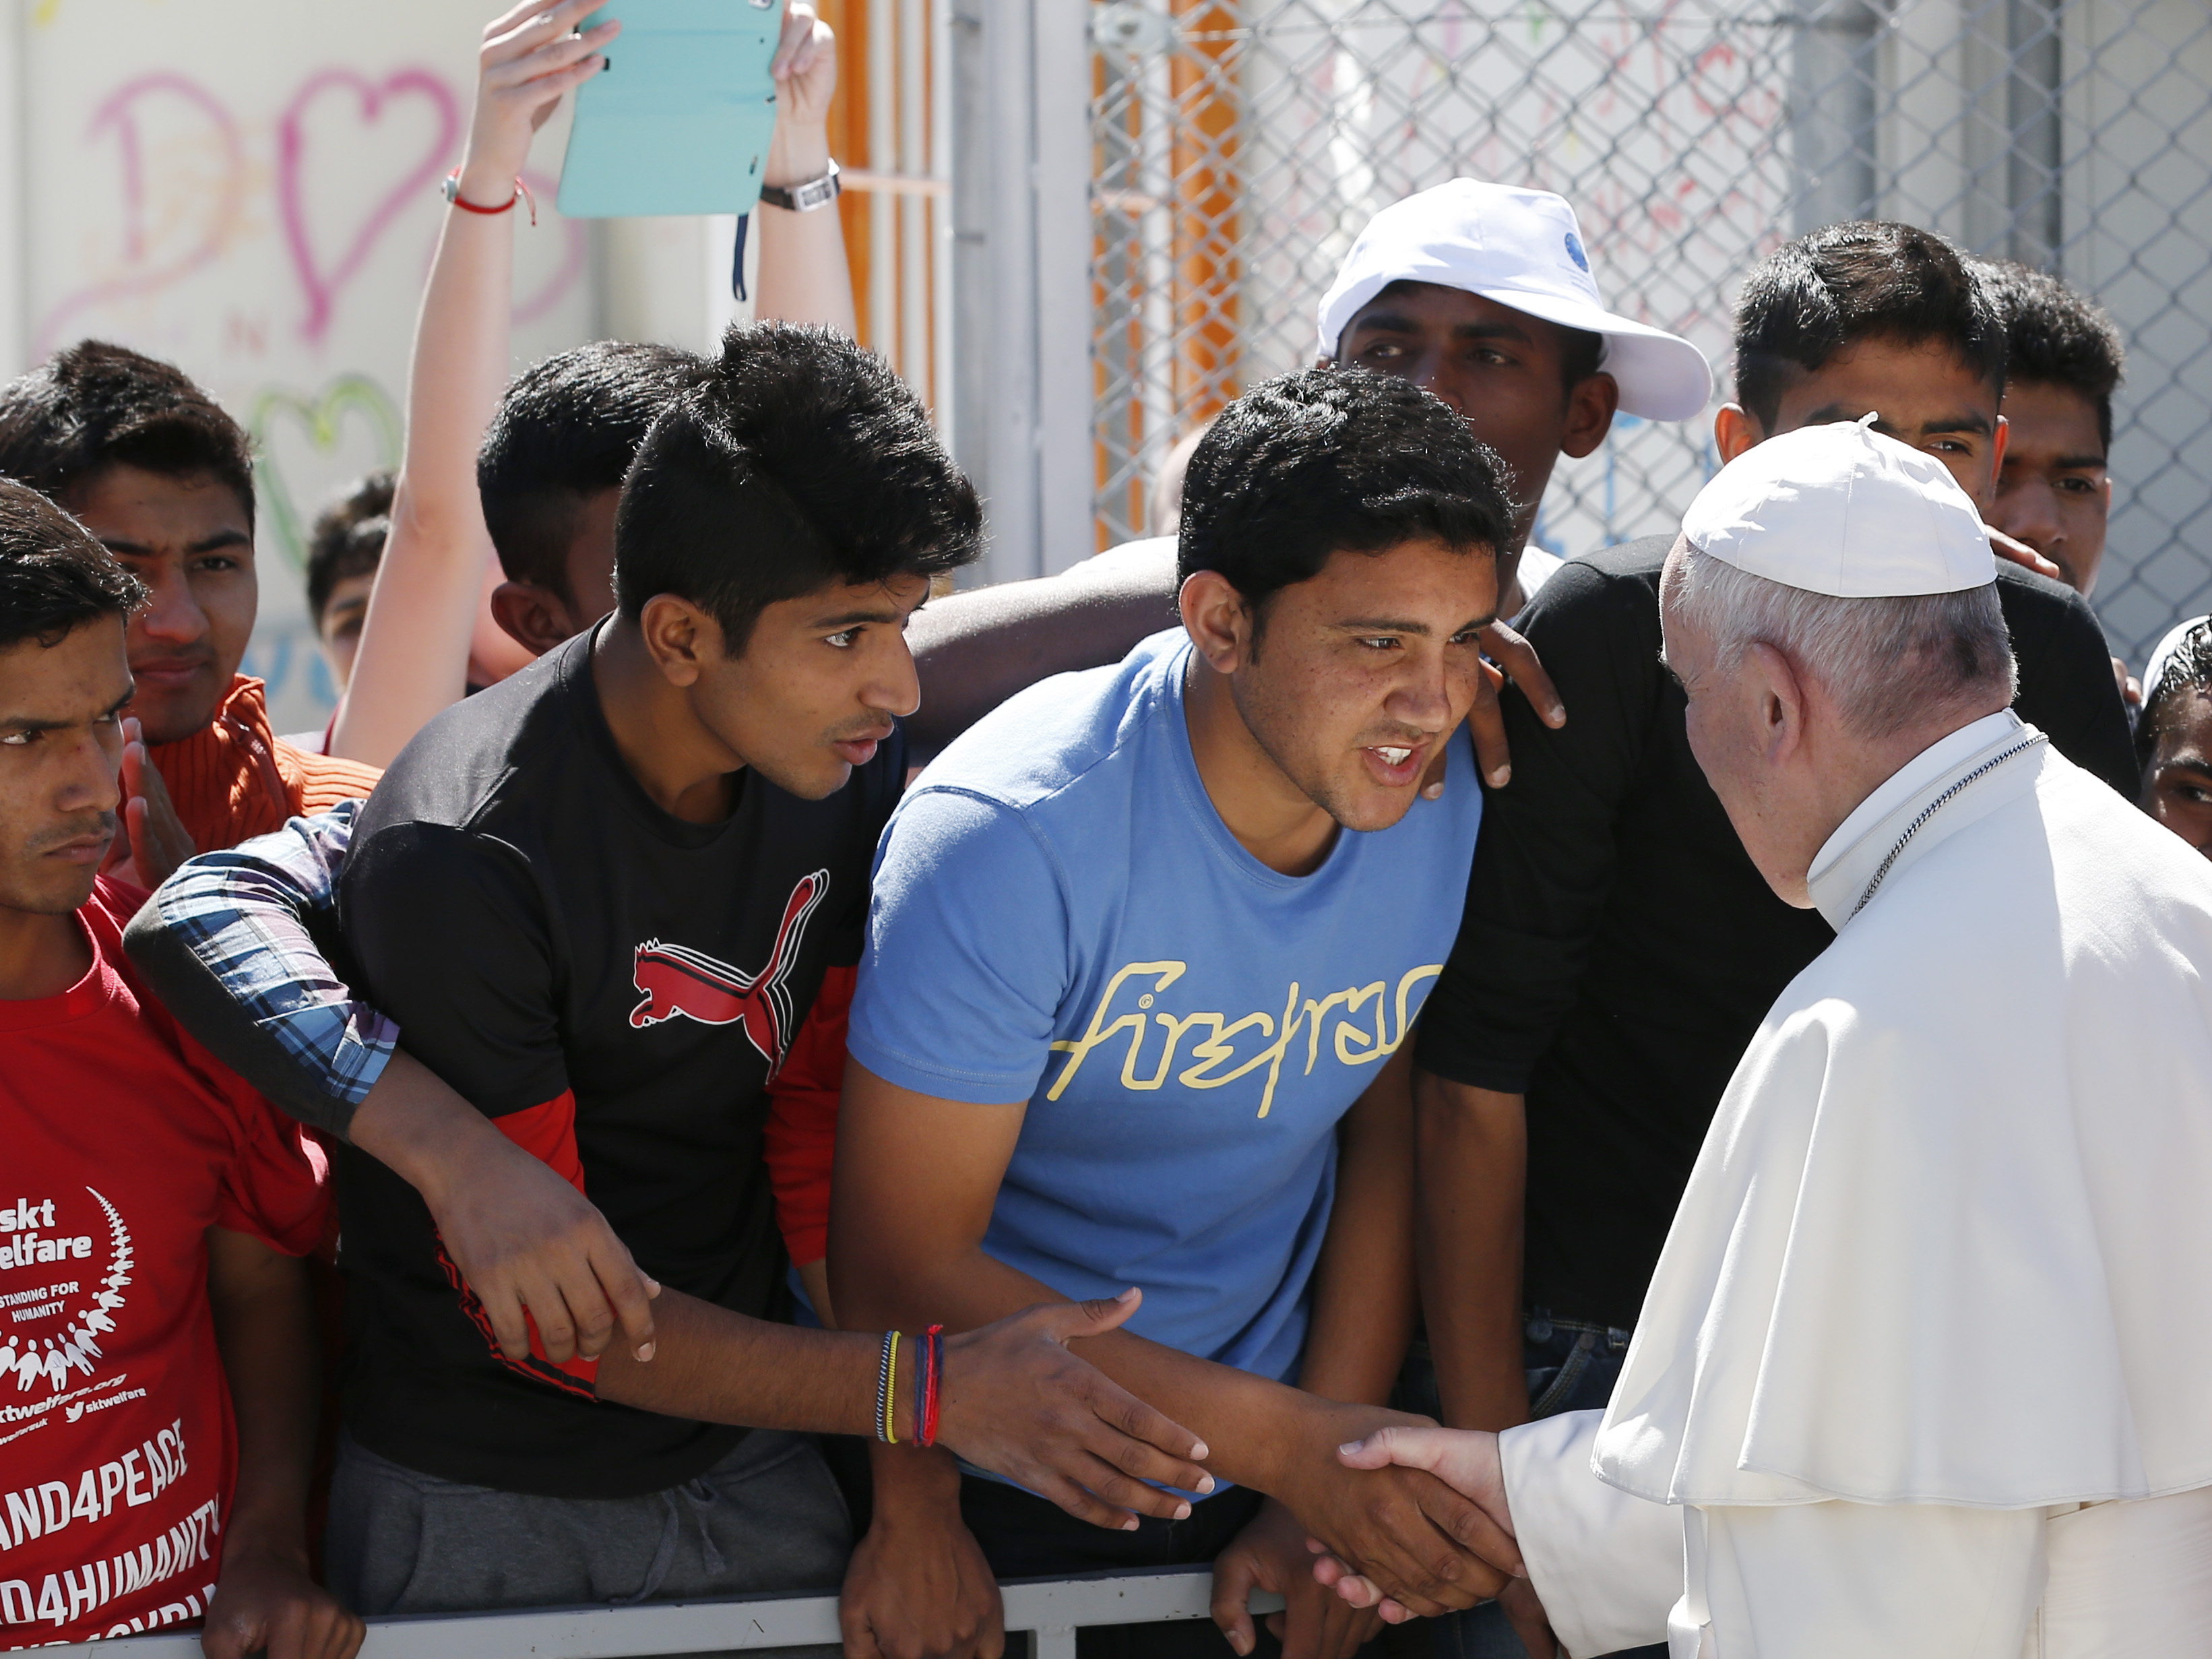 Pope thanks refugee center's efforts to help migrants